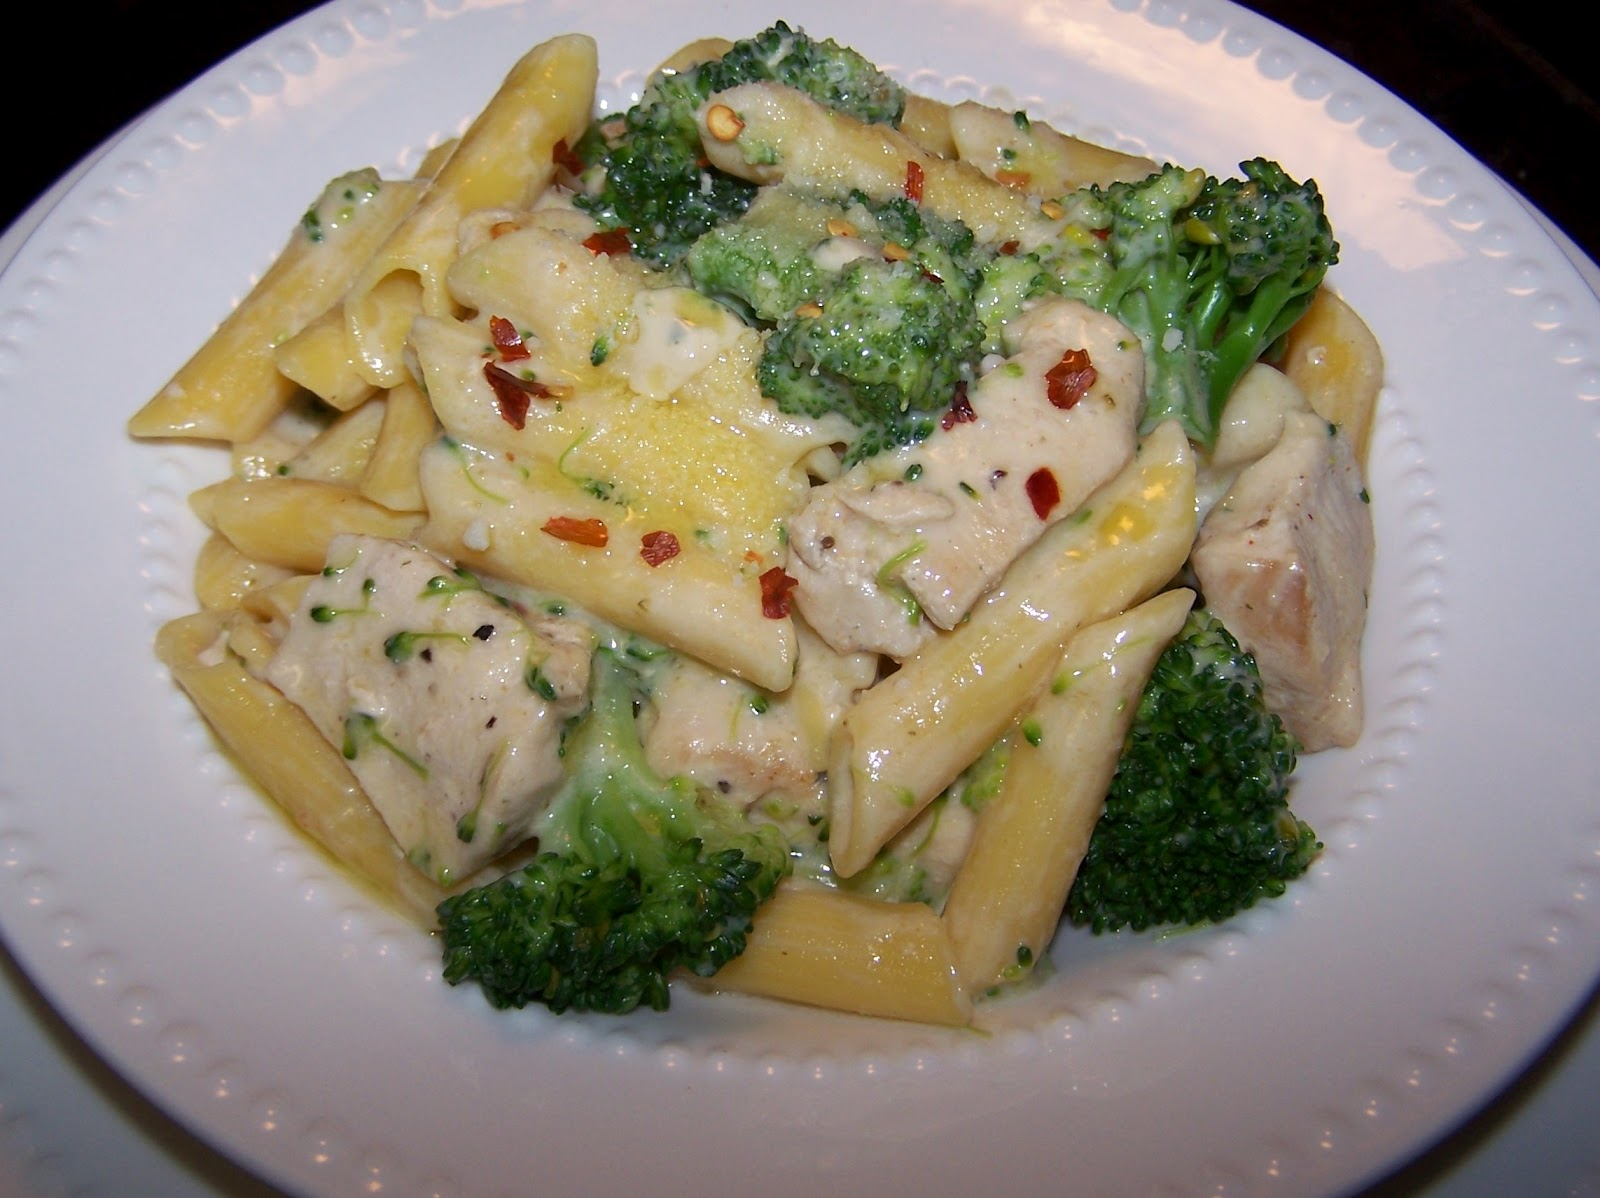 and broccoli pasta creamy chicken and broccoli skillet casserole ...